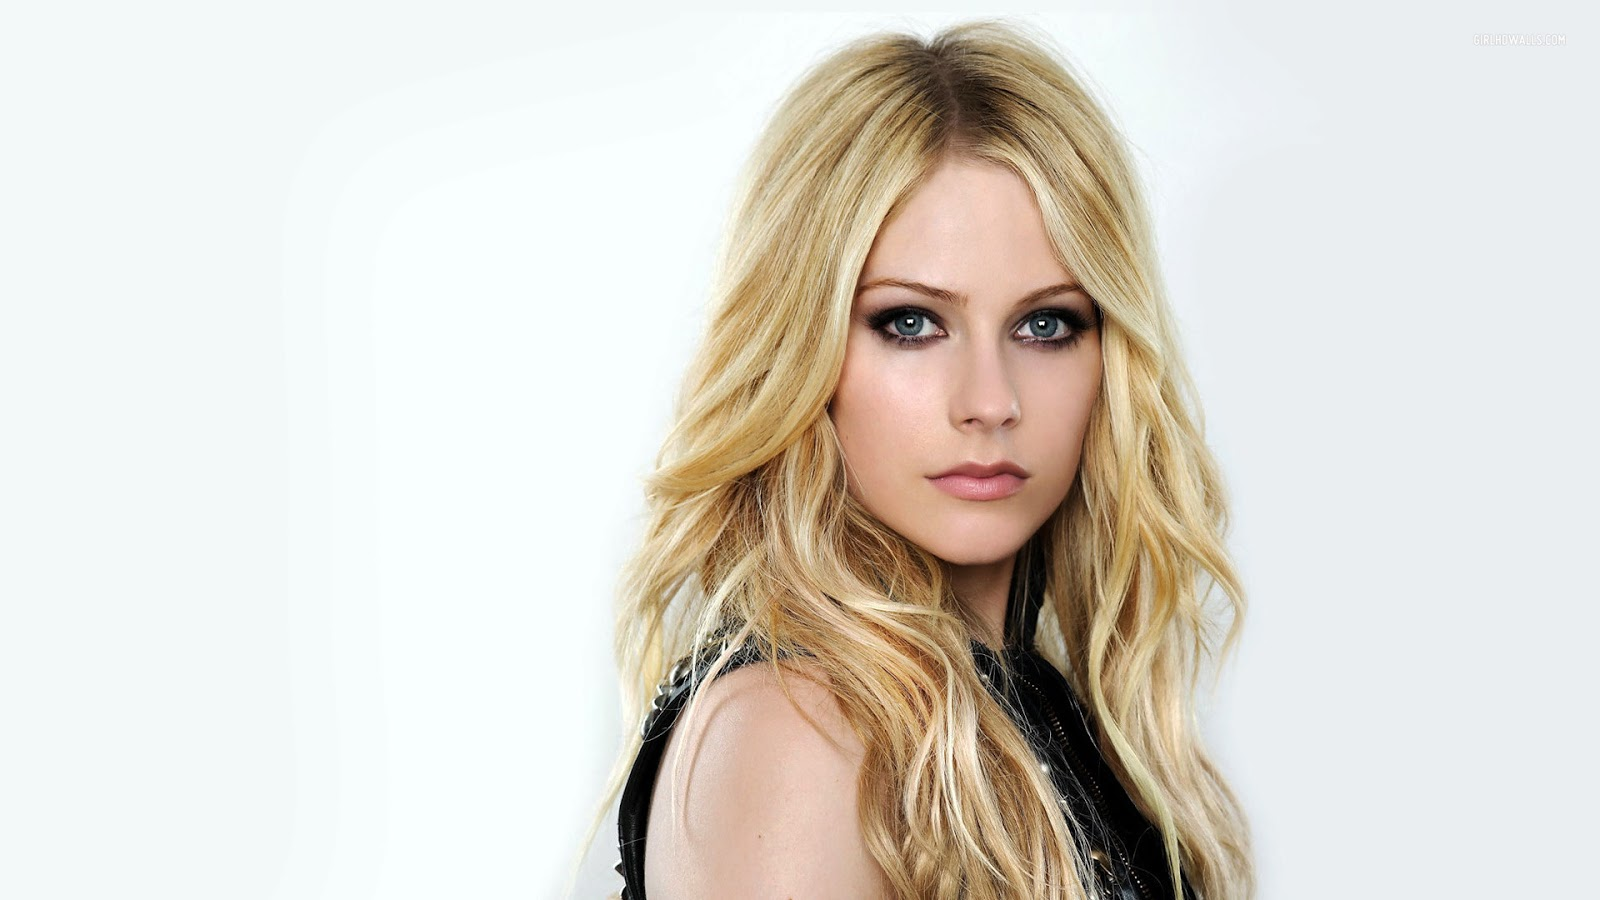 Avril Lavigne Hd Wallpapers | HD Wallpapers Lavigne